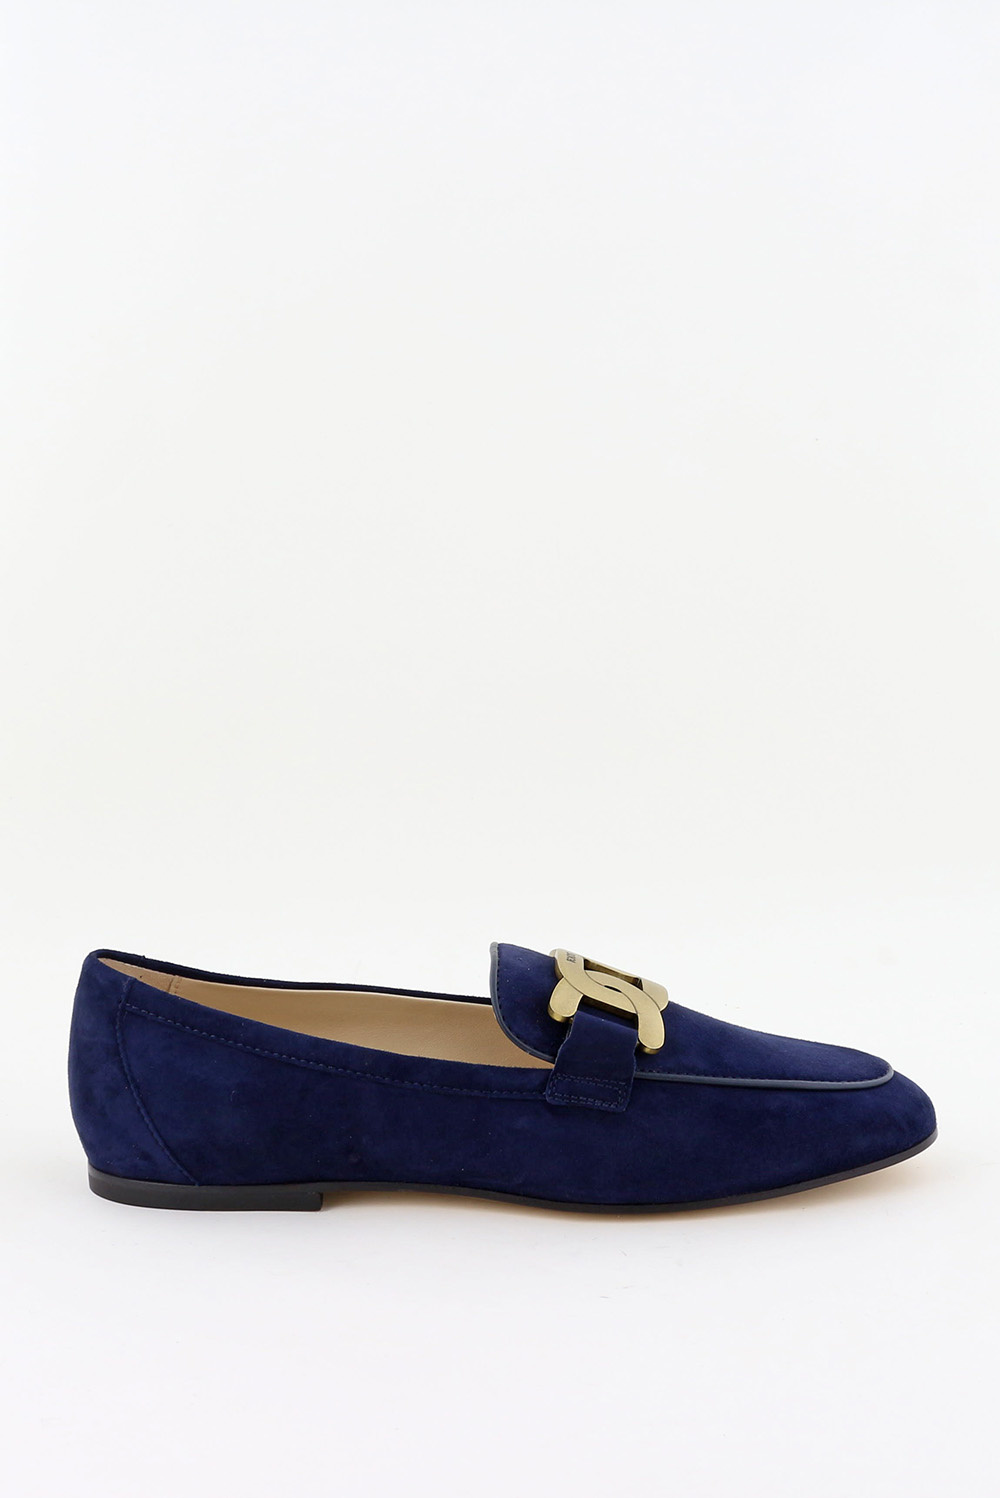 Tods loafers XXW79A0DD00 blauw